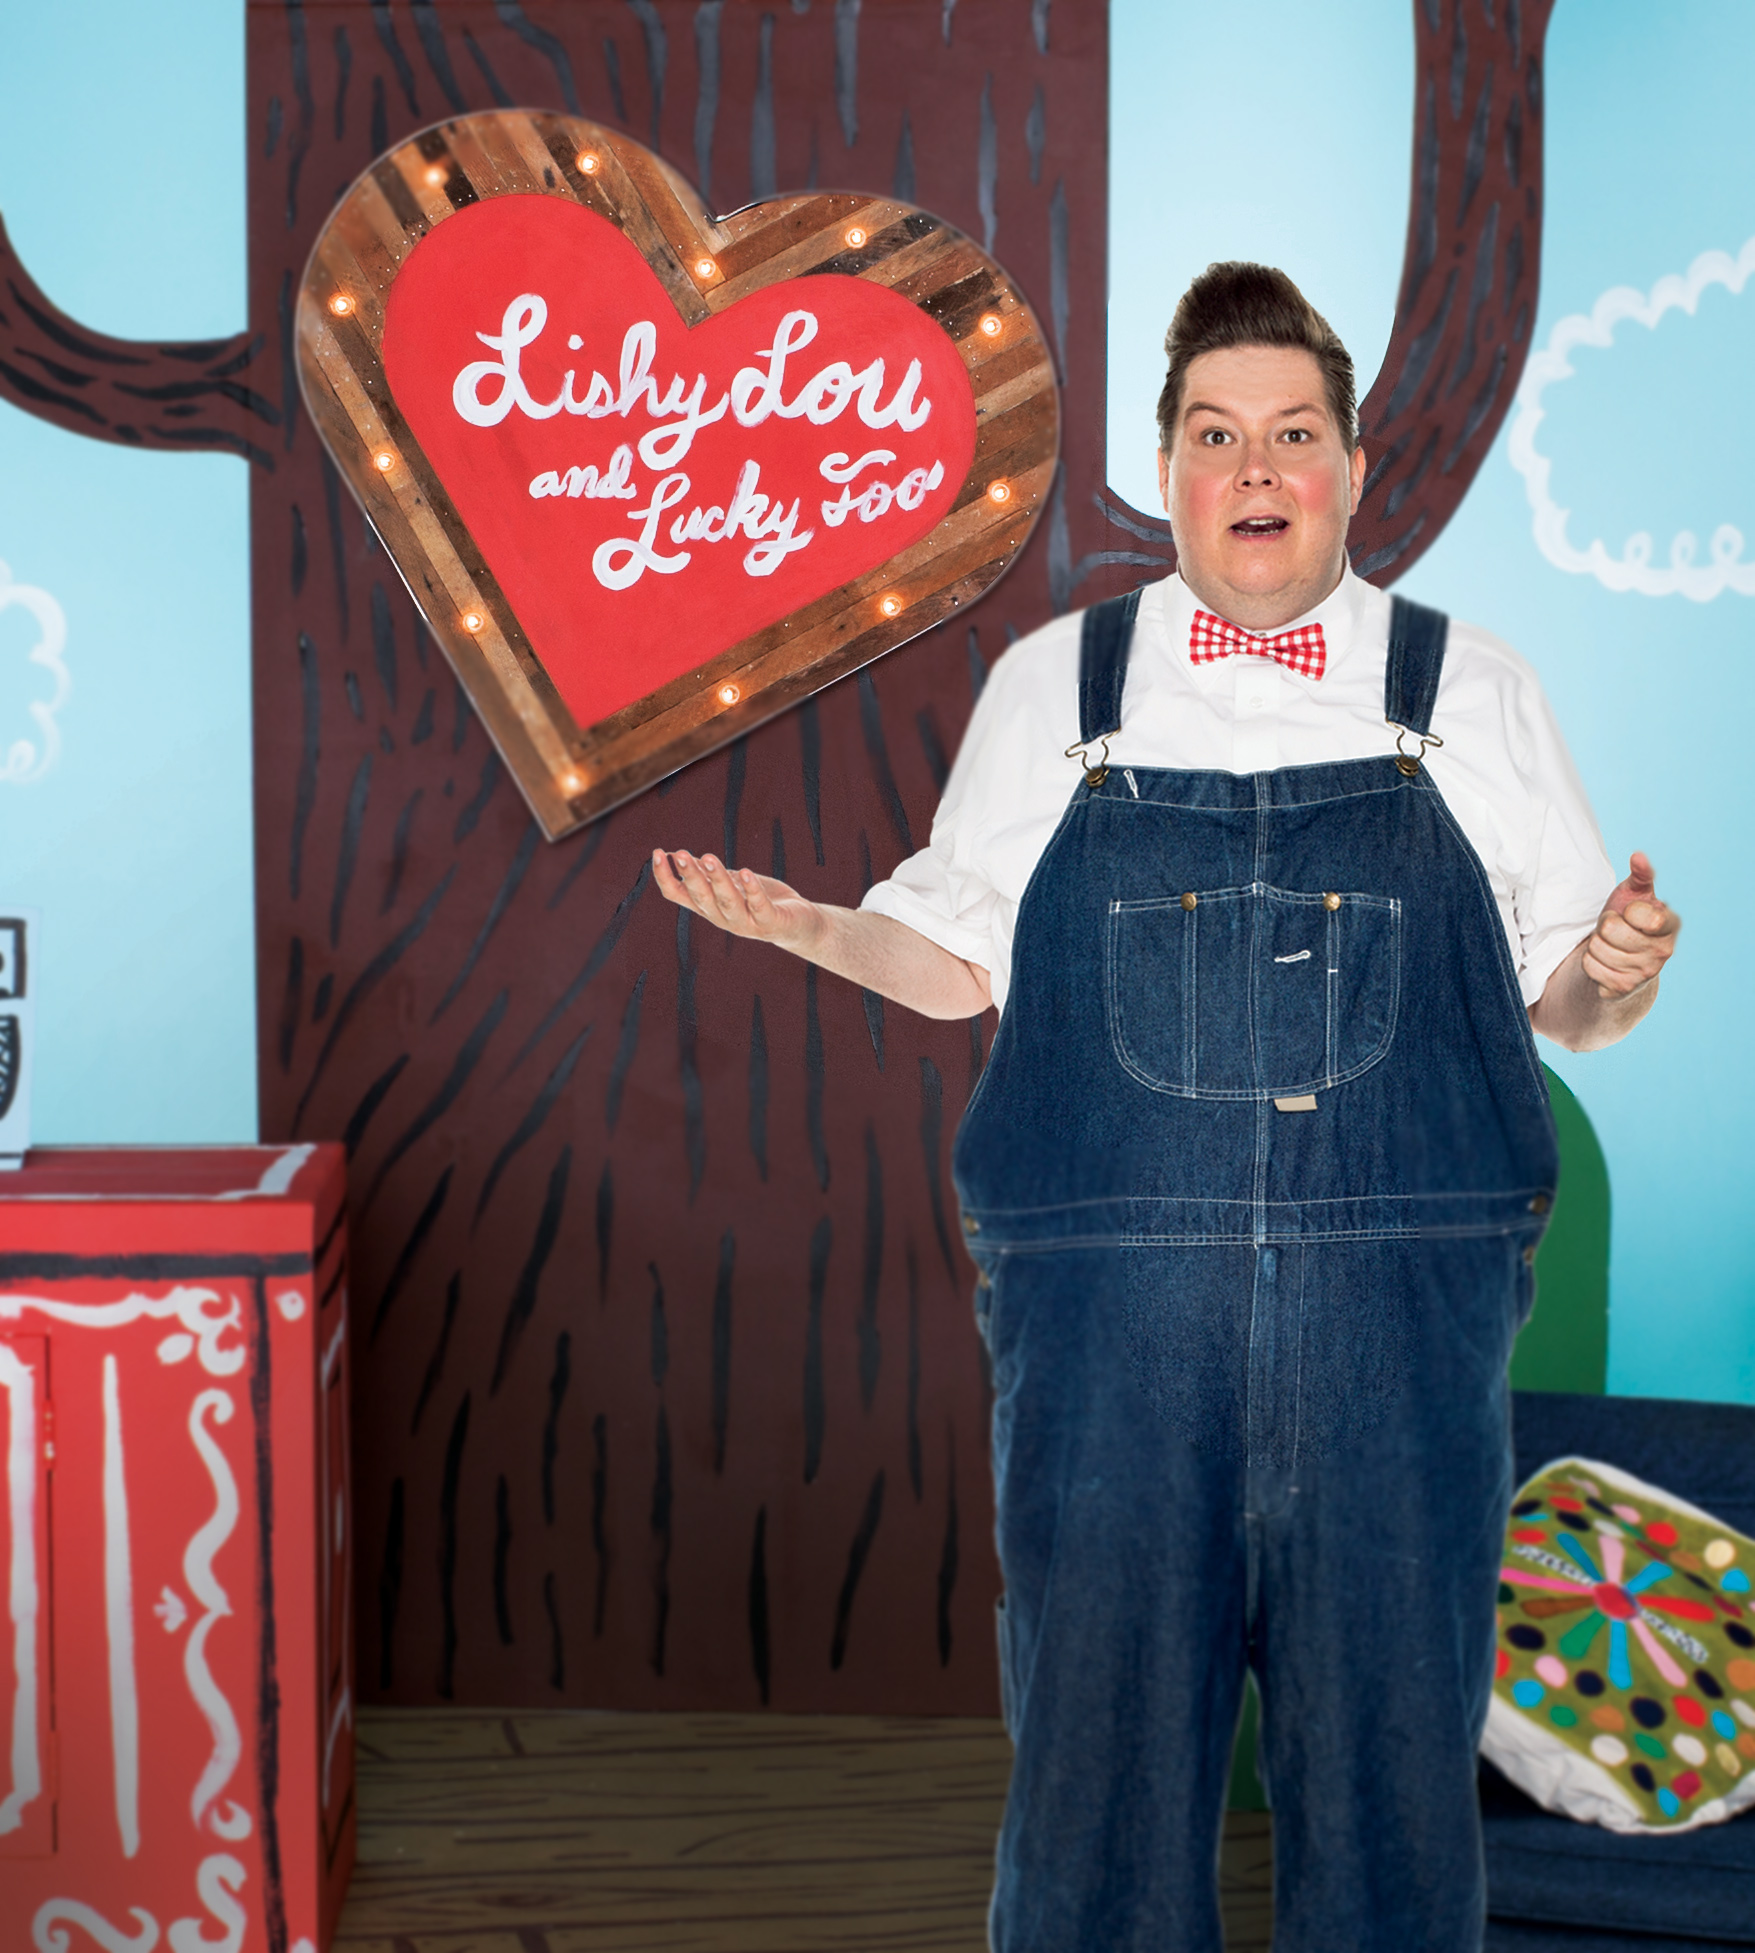 MILT is the treehouse handyman and Lishy's best friend, who is also a saboteur and prankster.But his big heart has everyone loving this playful trickster.